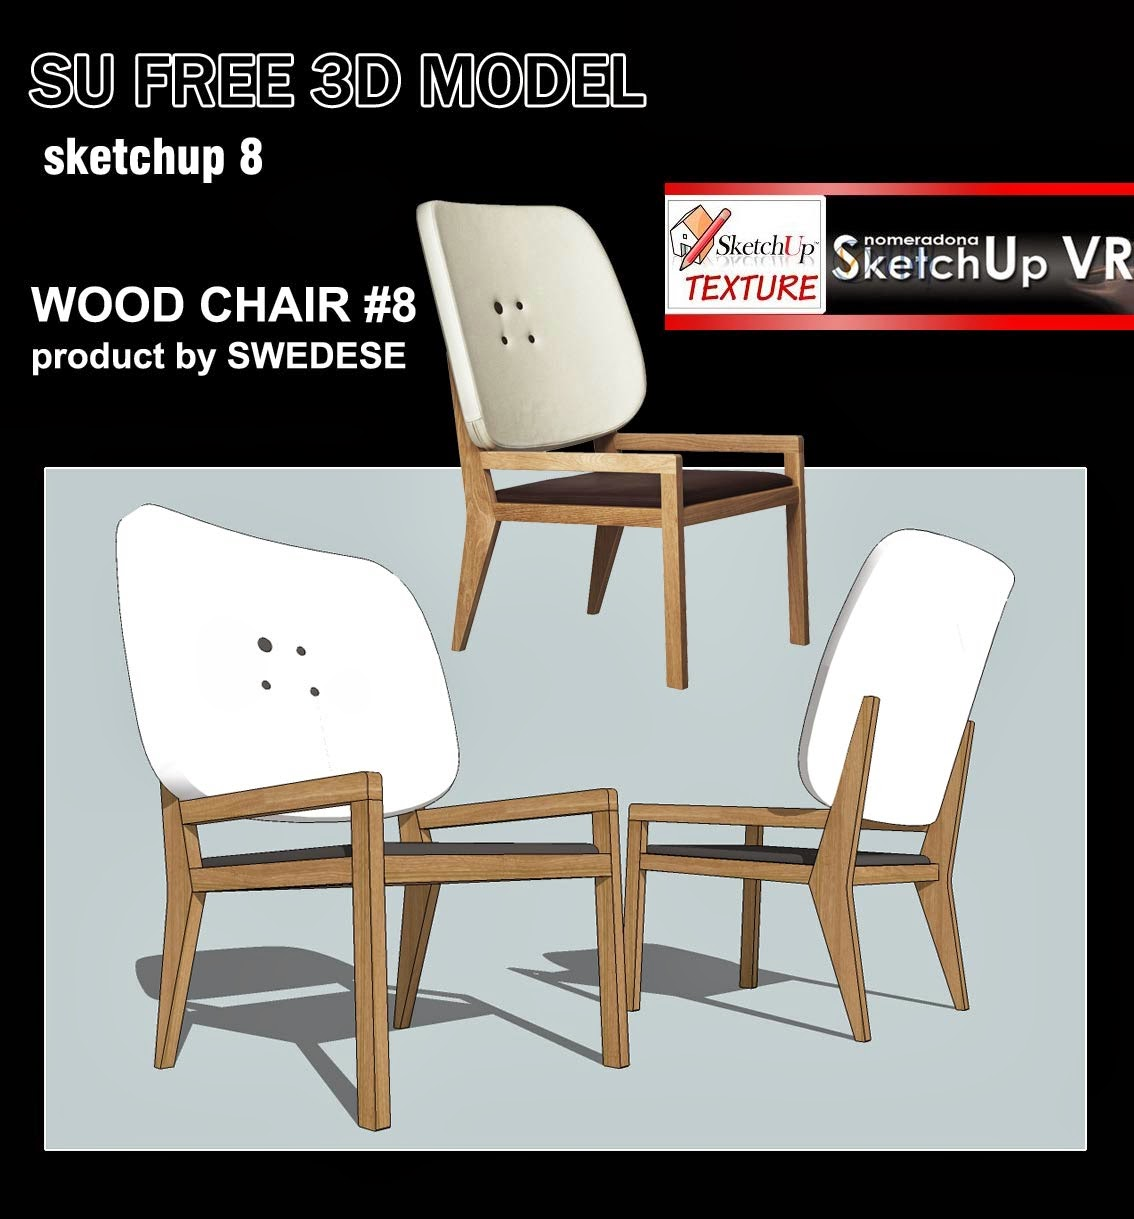 chair design sketchup evenflo majestic high jungle texture models and easy